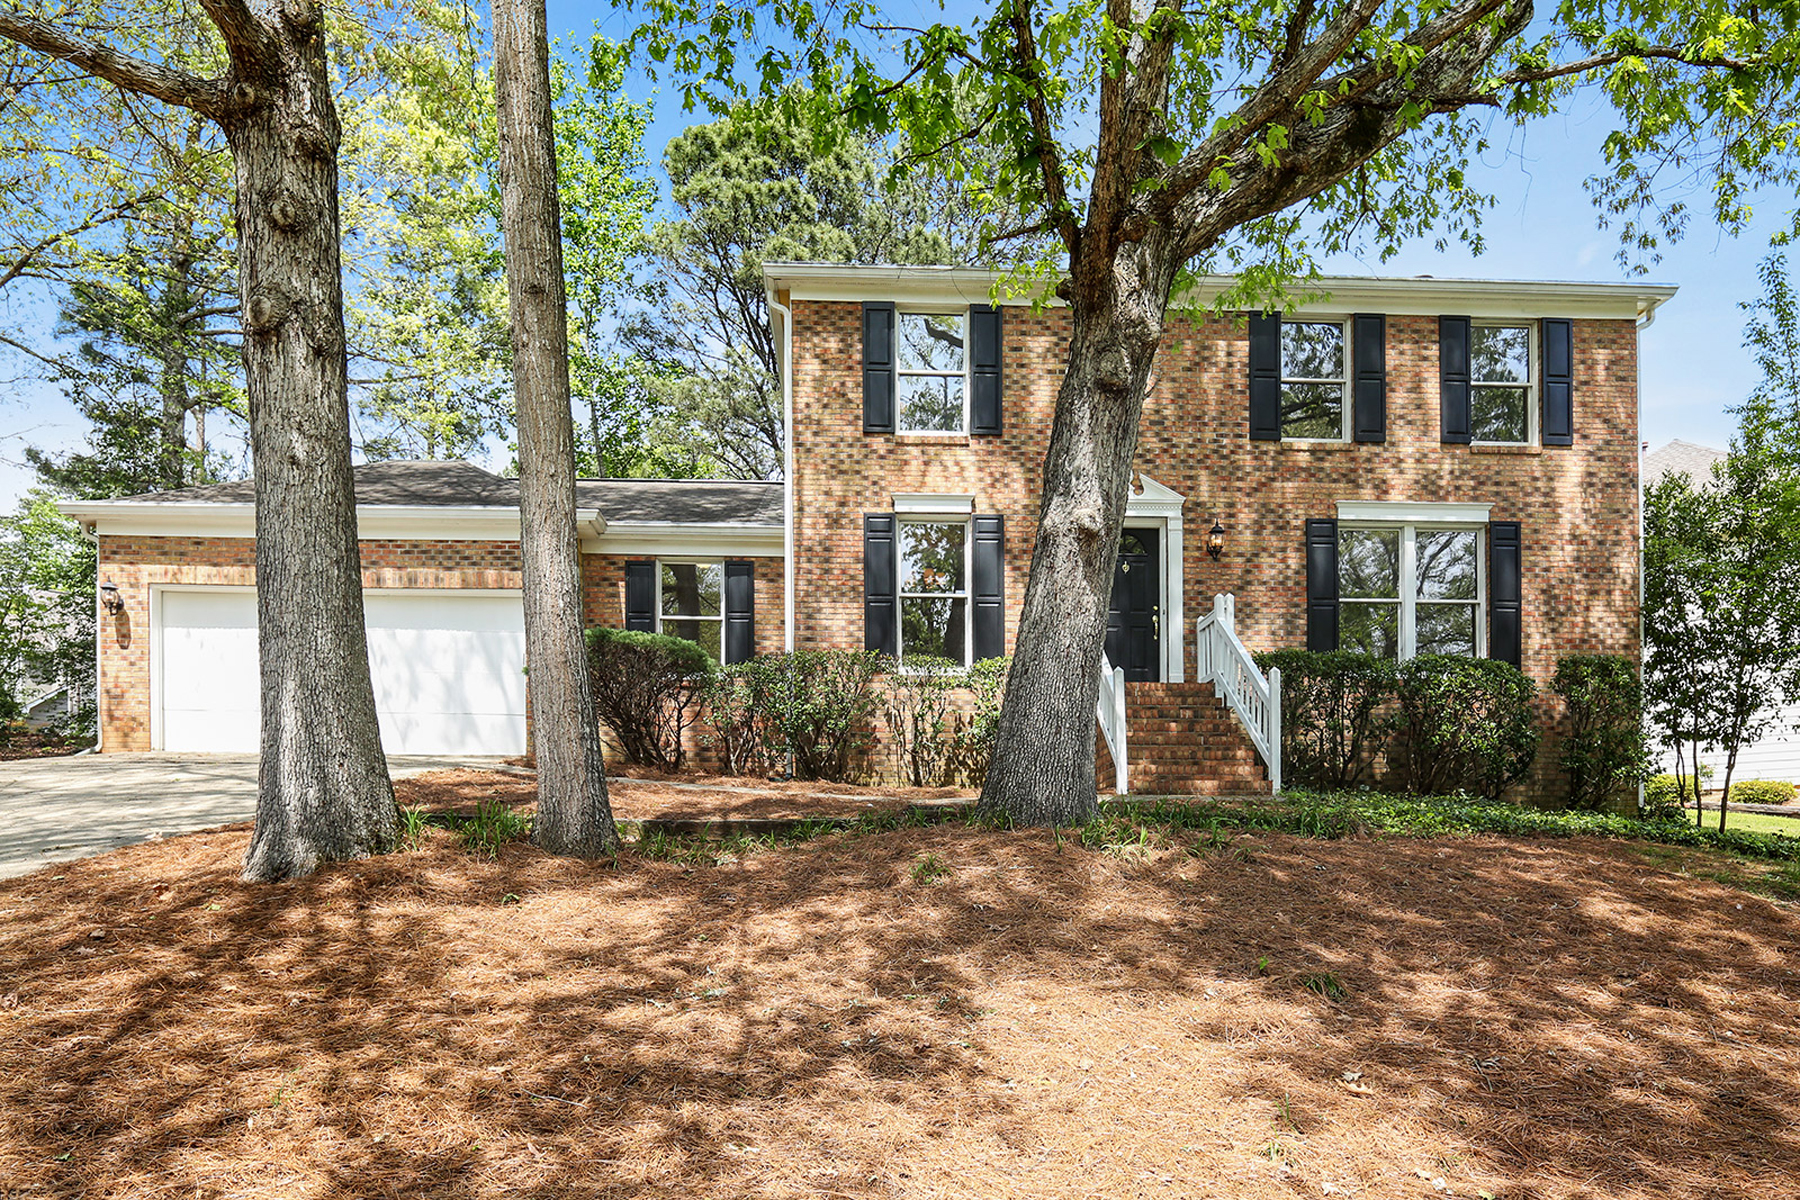 """Single Family Home for Active at Traditional """"Gem"""" Located In Highly Rated Marietta School District 4619 Villa Chase Drive NE Marietta, Georgia 30068 United States"""